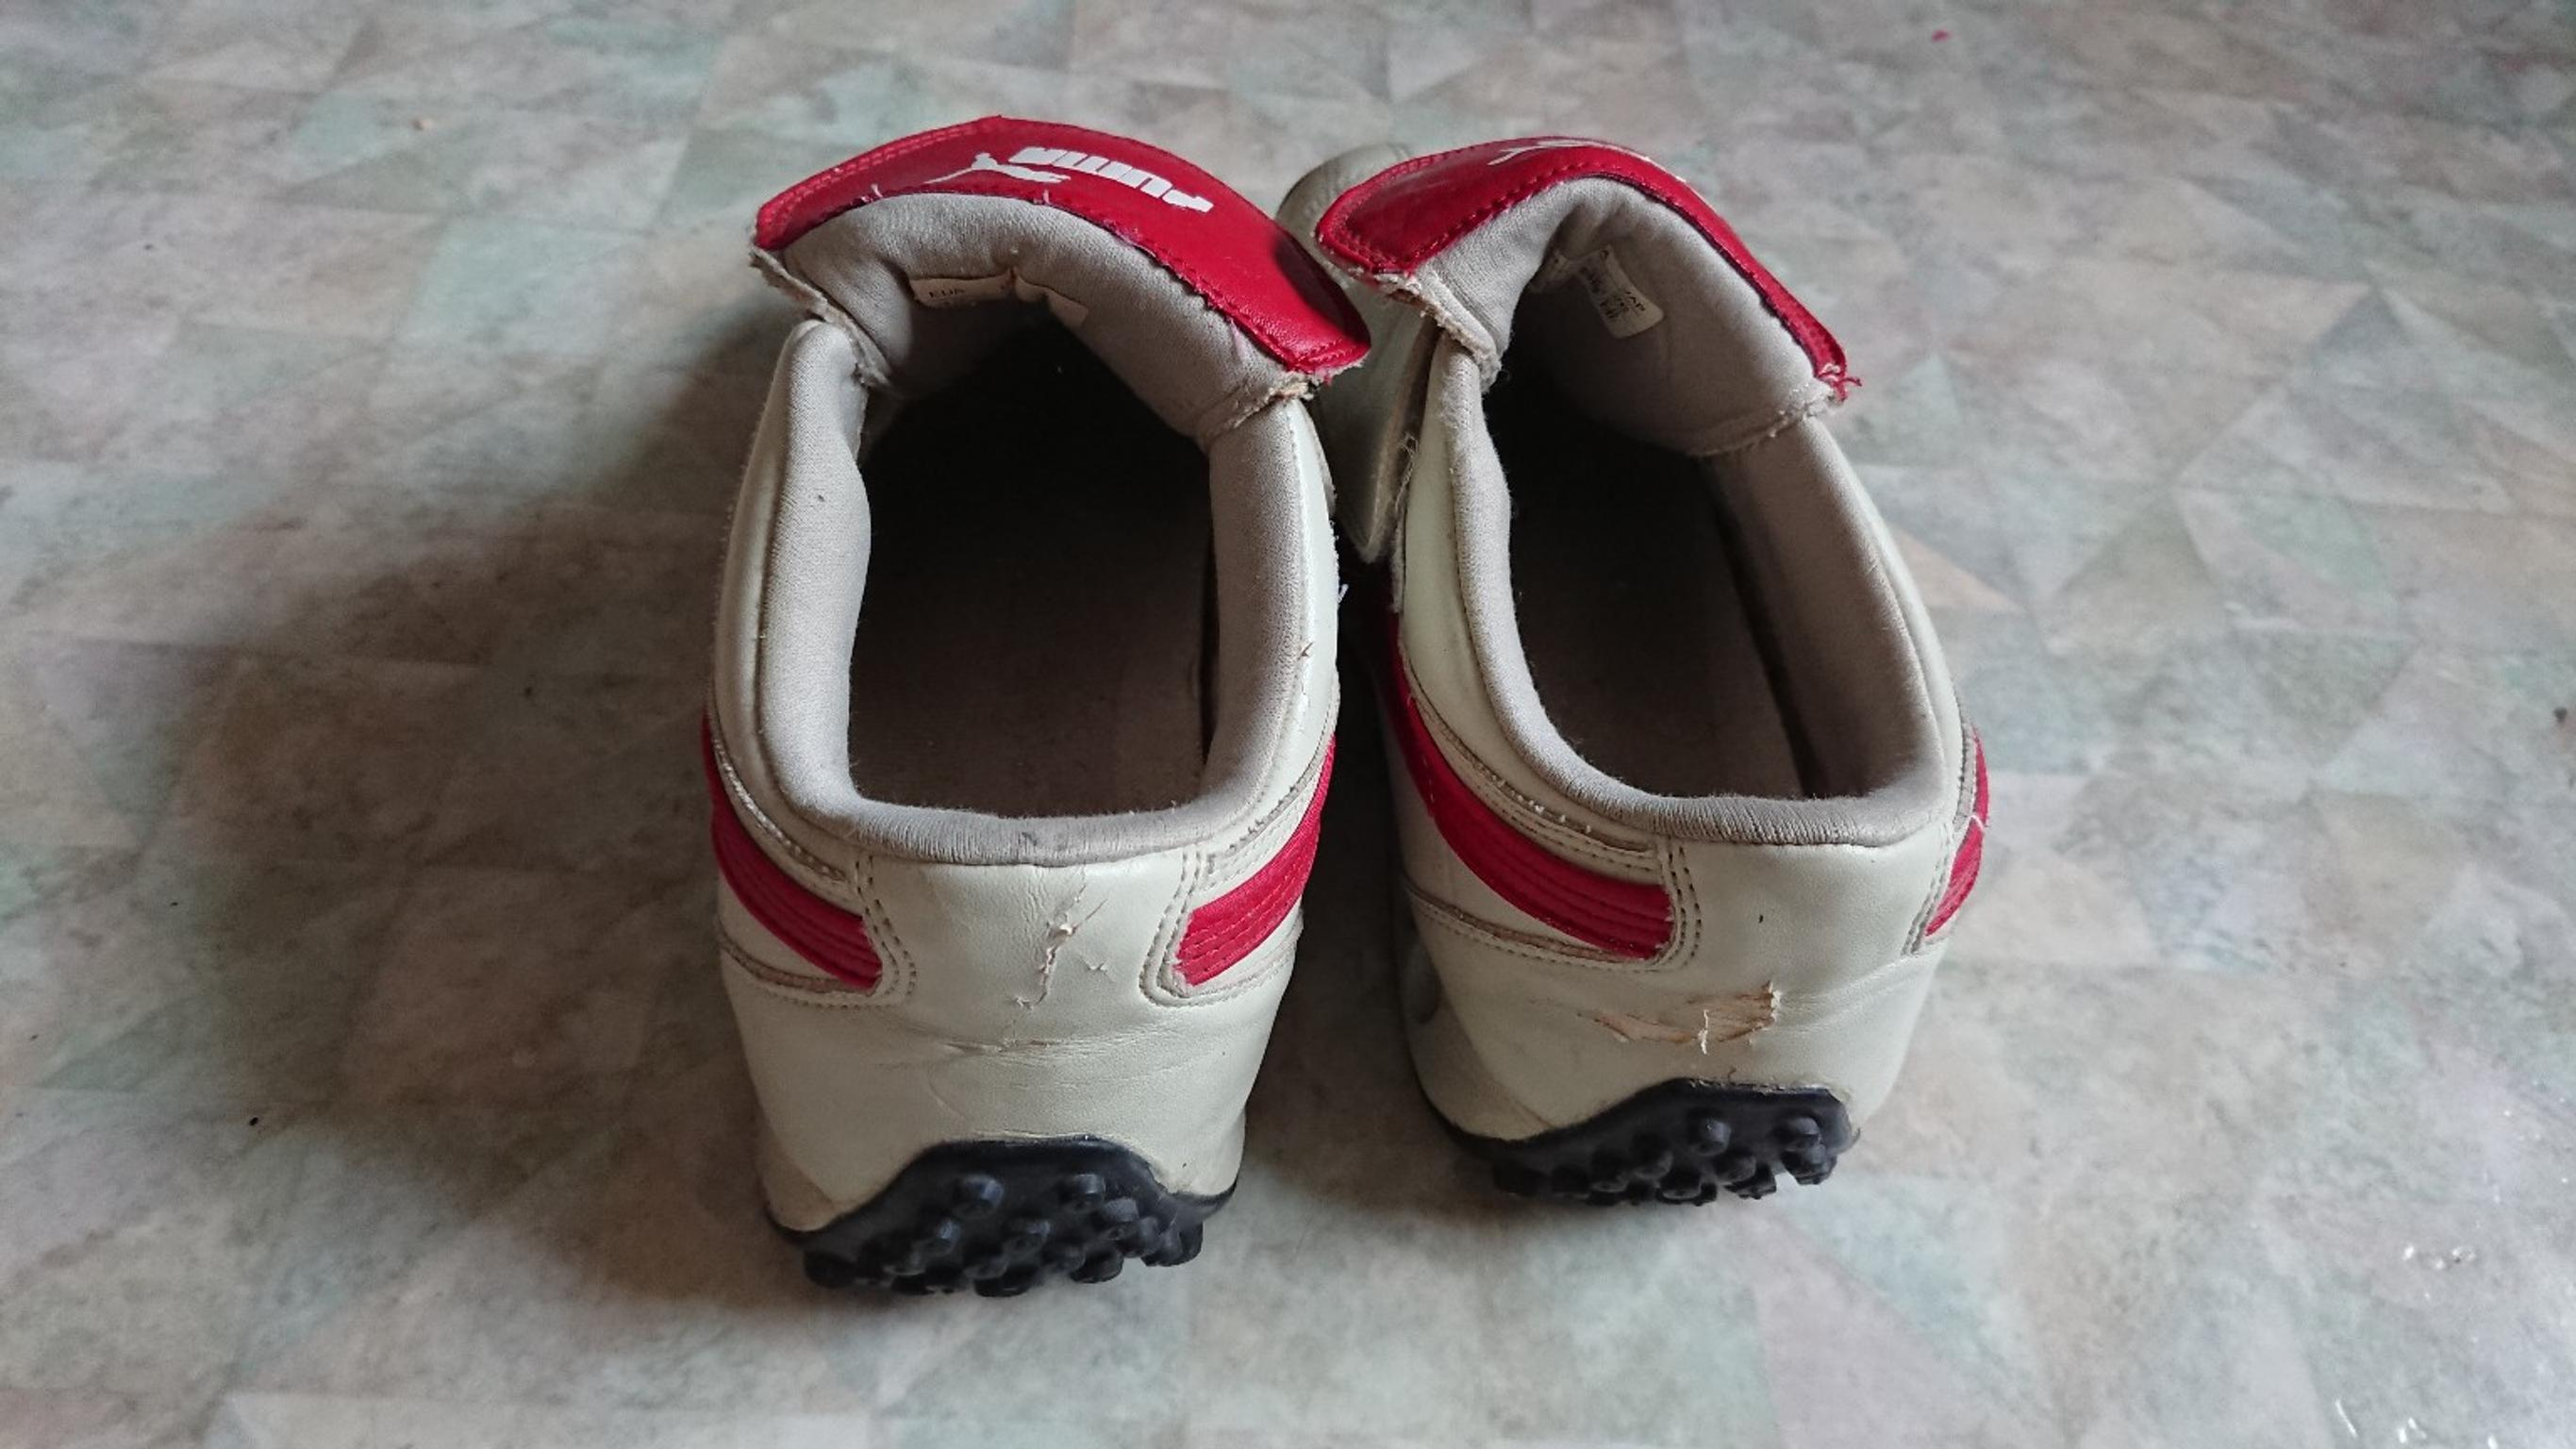 Puma Schuhe Gr 42 in 4770 for €1.00 for sale | Shpock